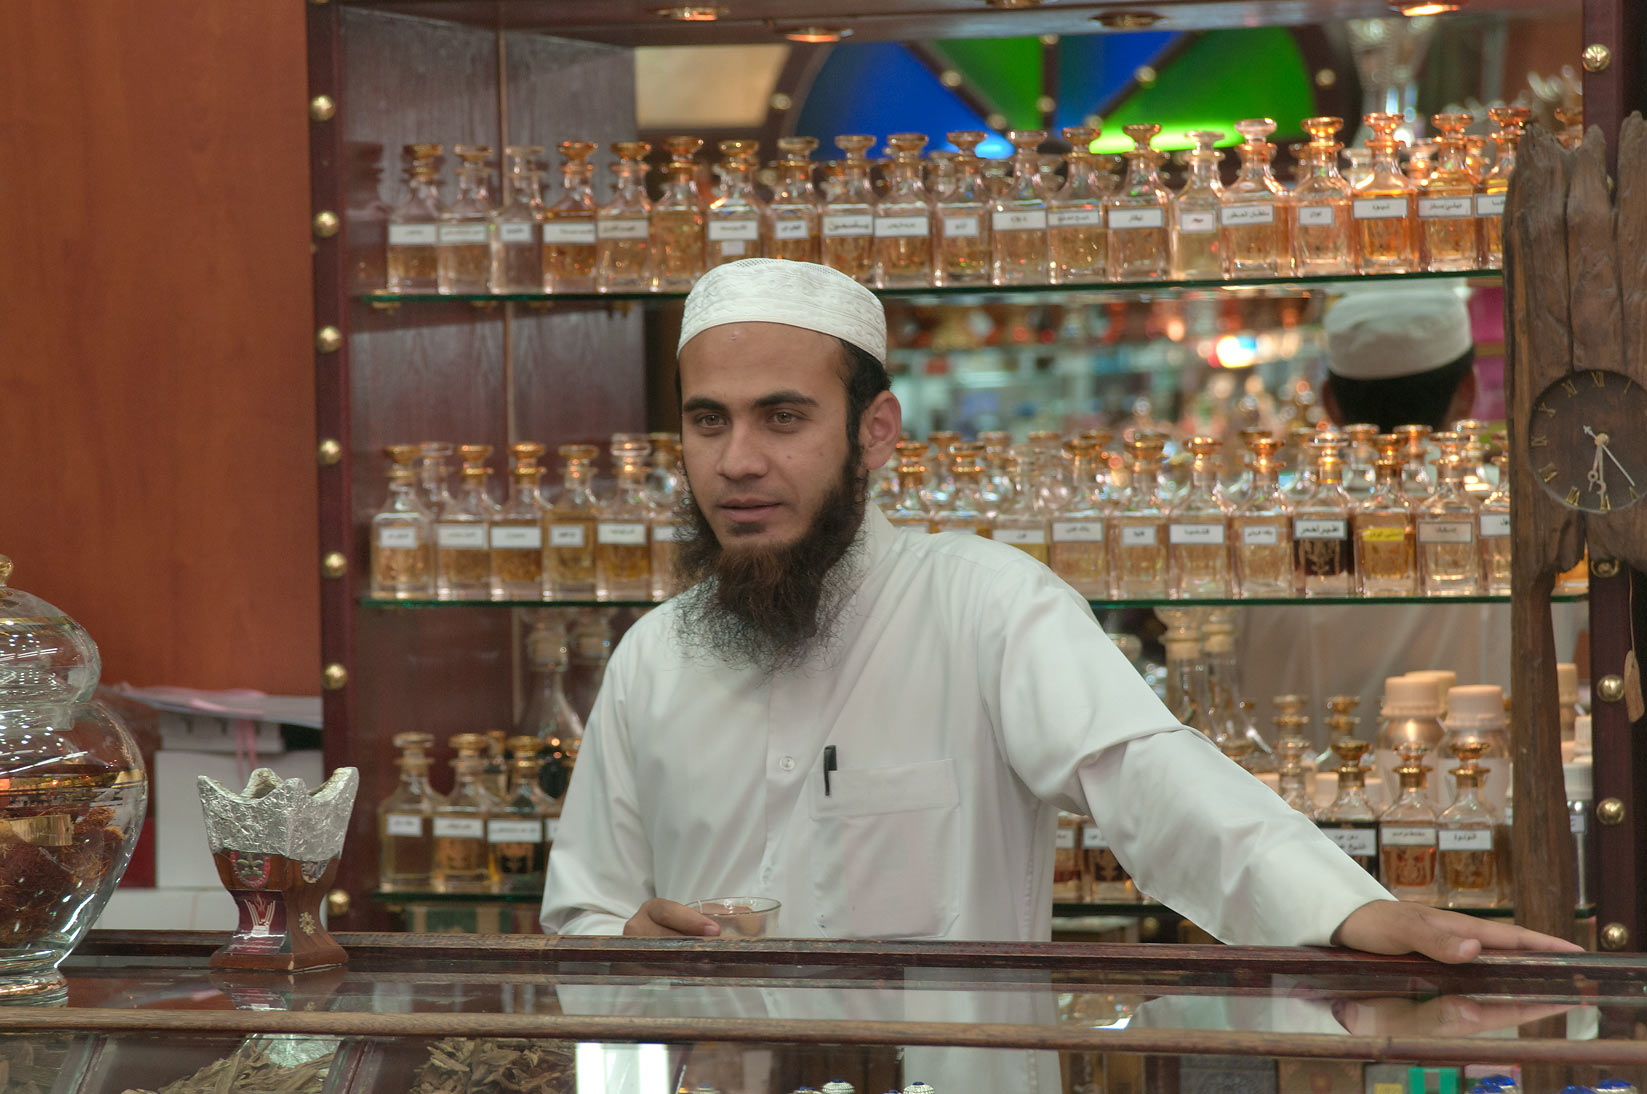 Selling perfumes in Souq Waqif (Old Market). Doha, Qatar